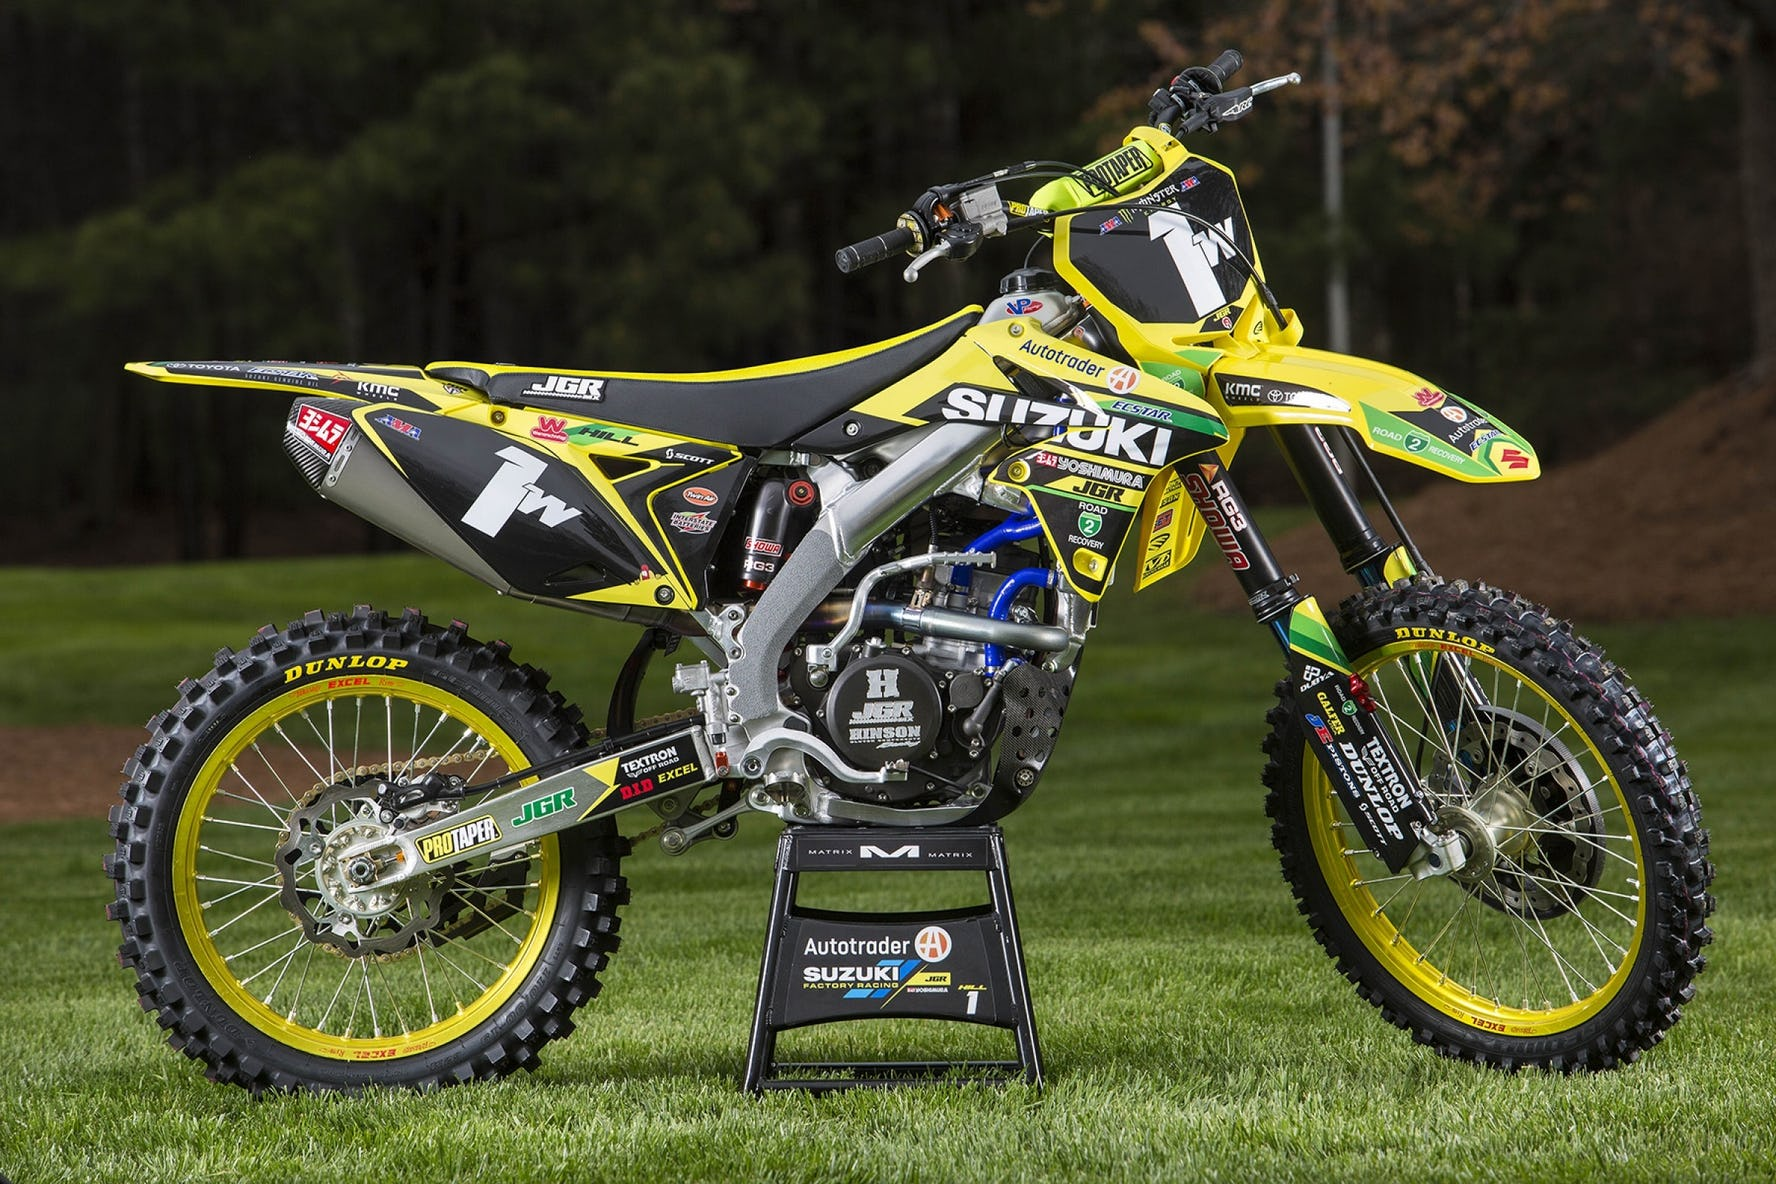 Autotrader/Yoshimura Suzuki Team To Support Road 2 Recovery - Racer